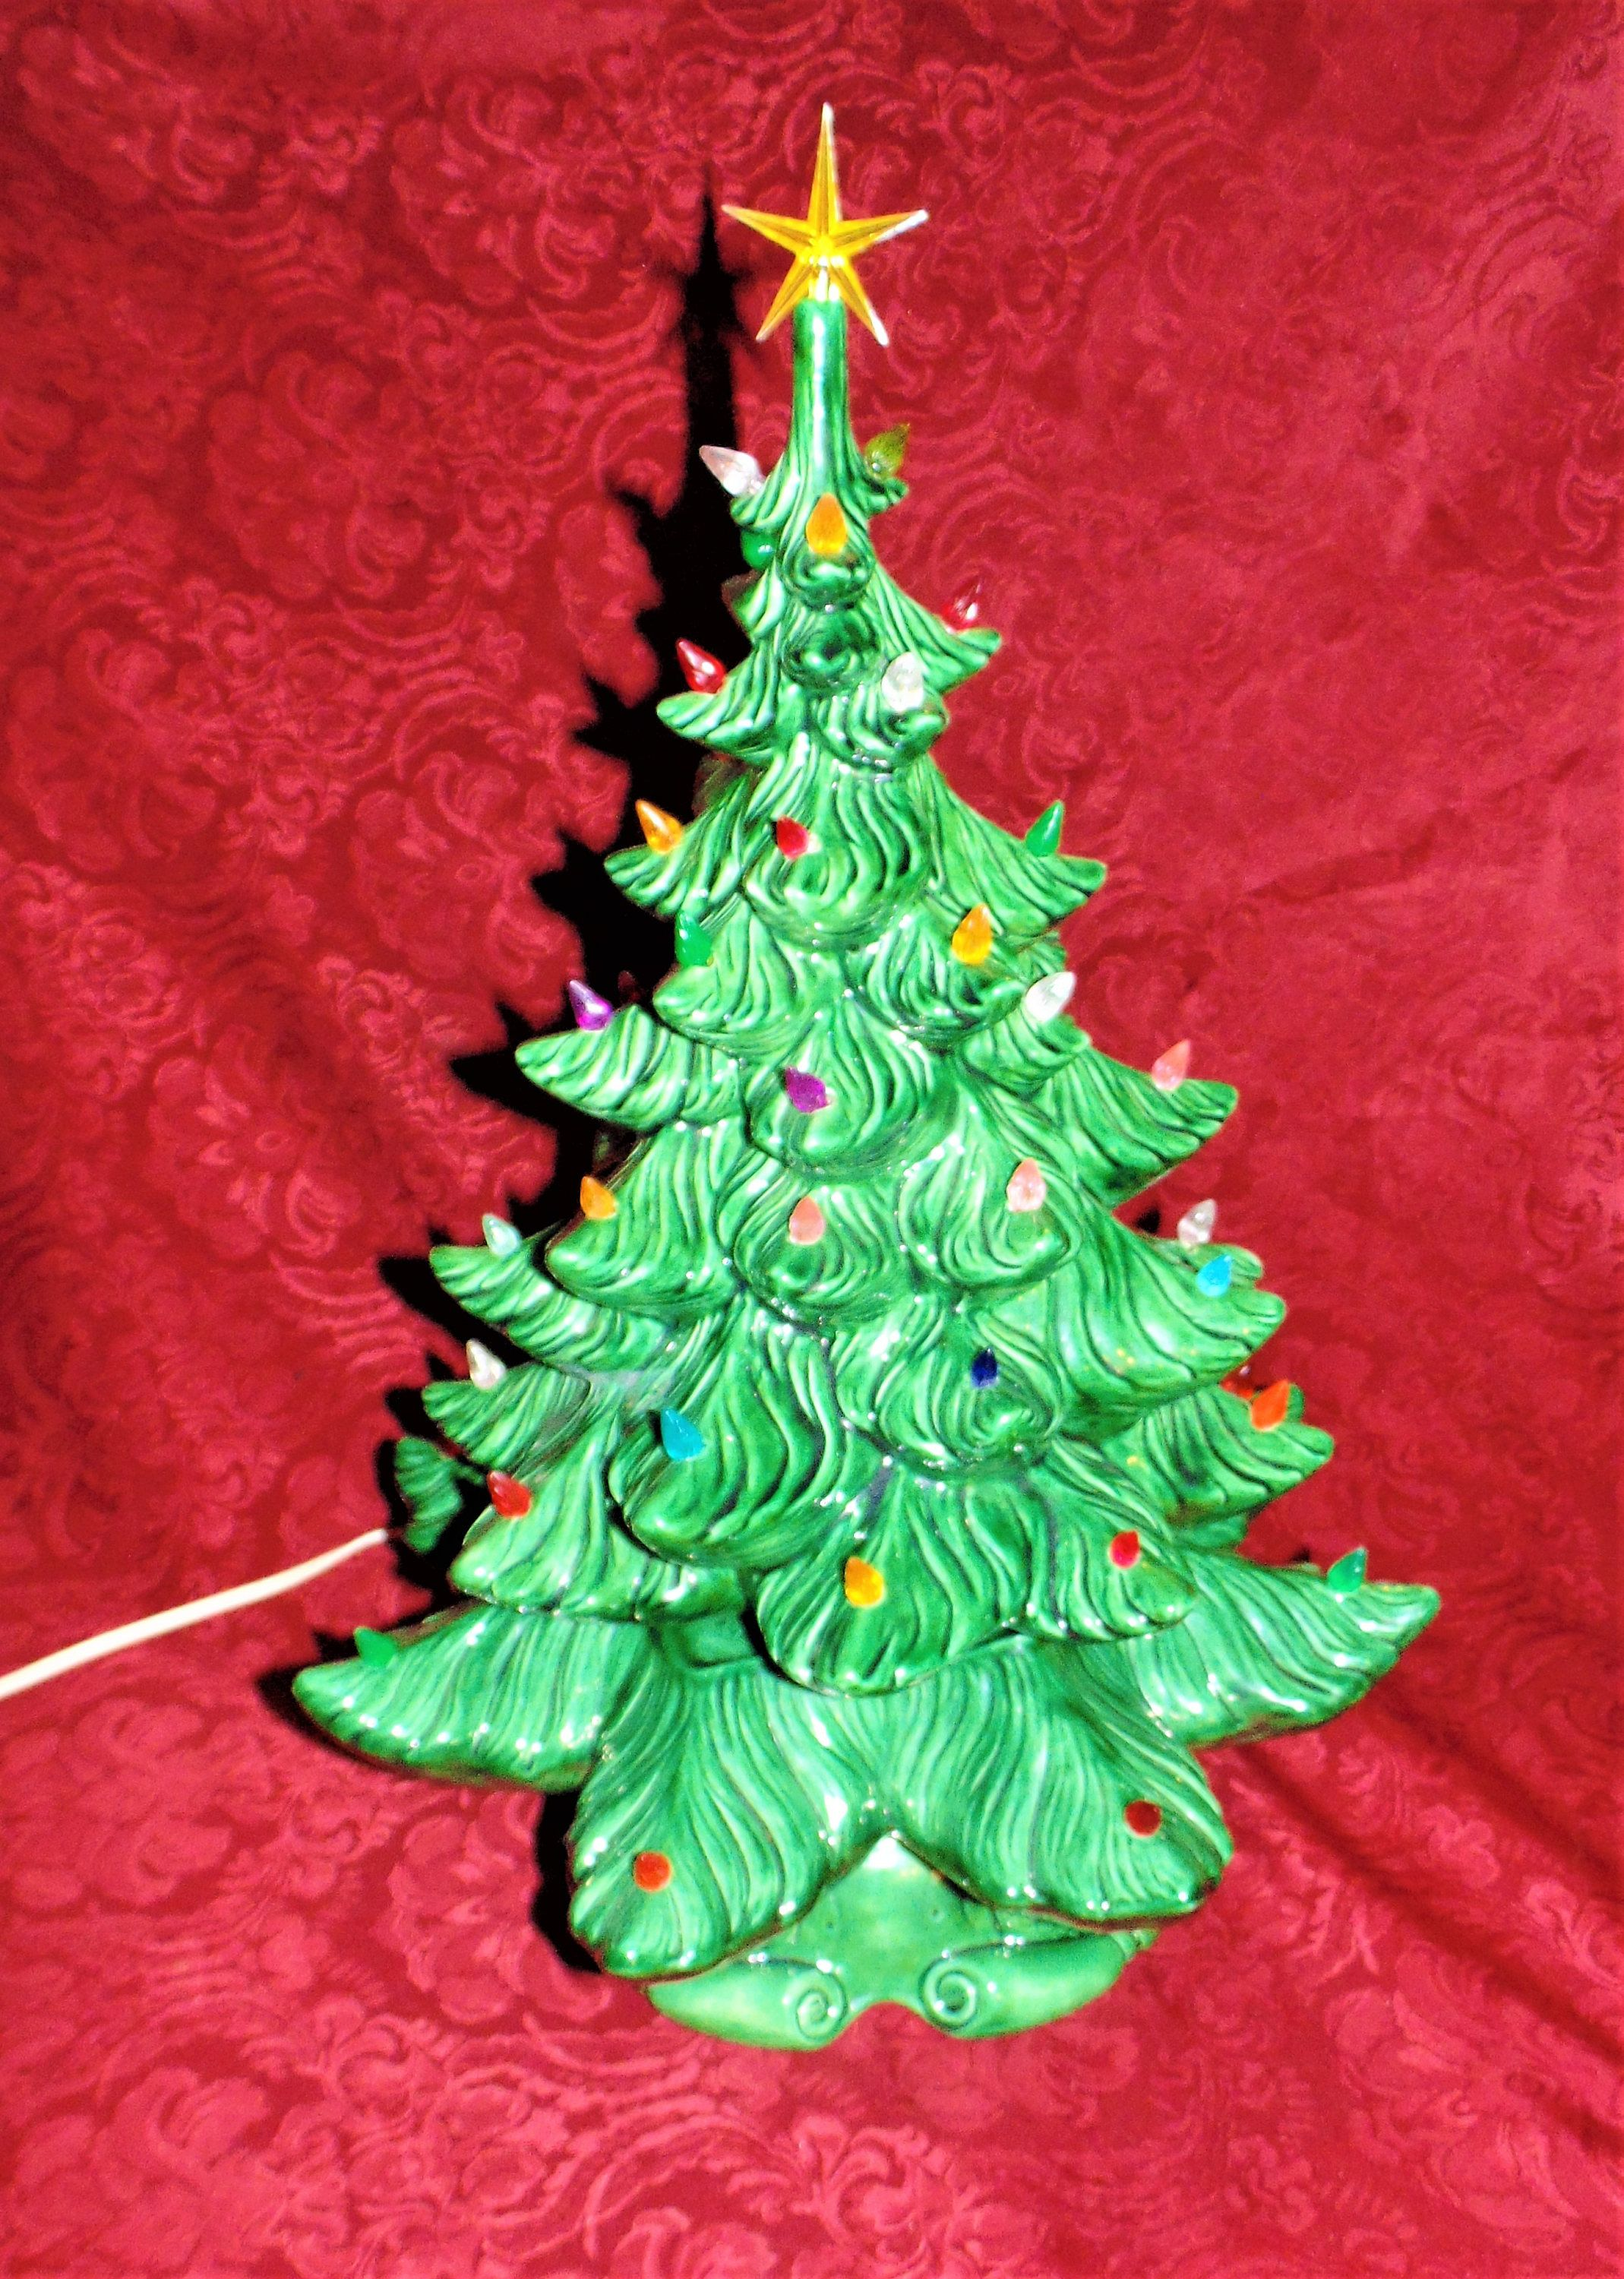 1973 Atlantic Mold Christmas Tree 2 Tier Lighted Ceramic Large By